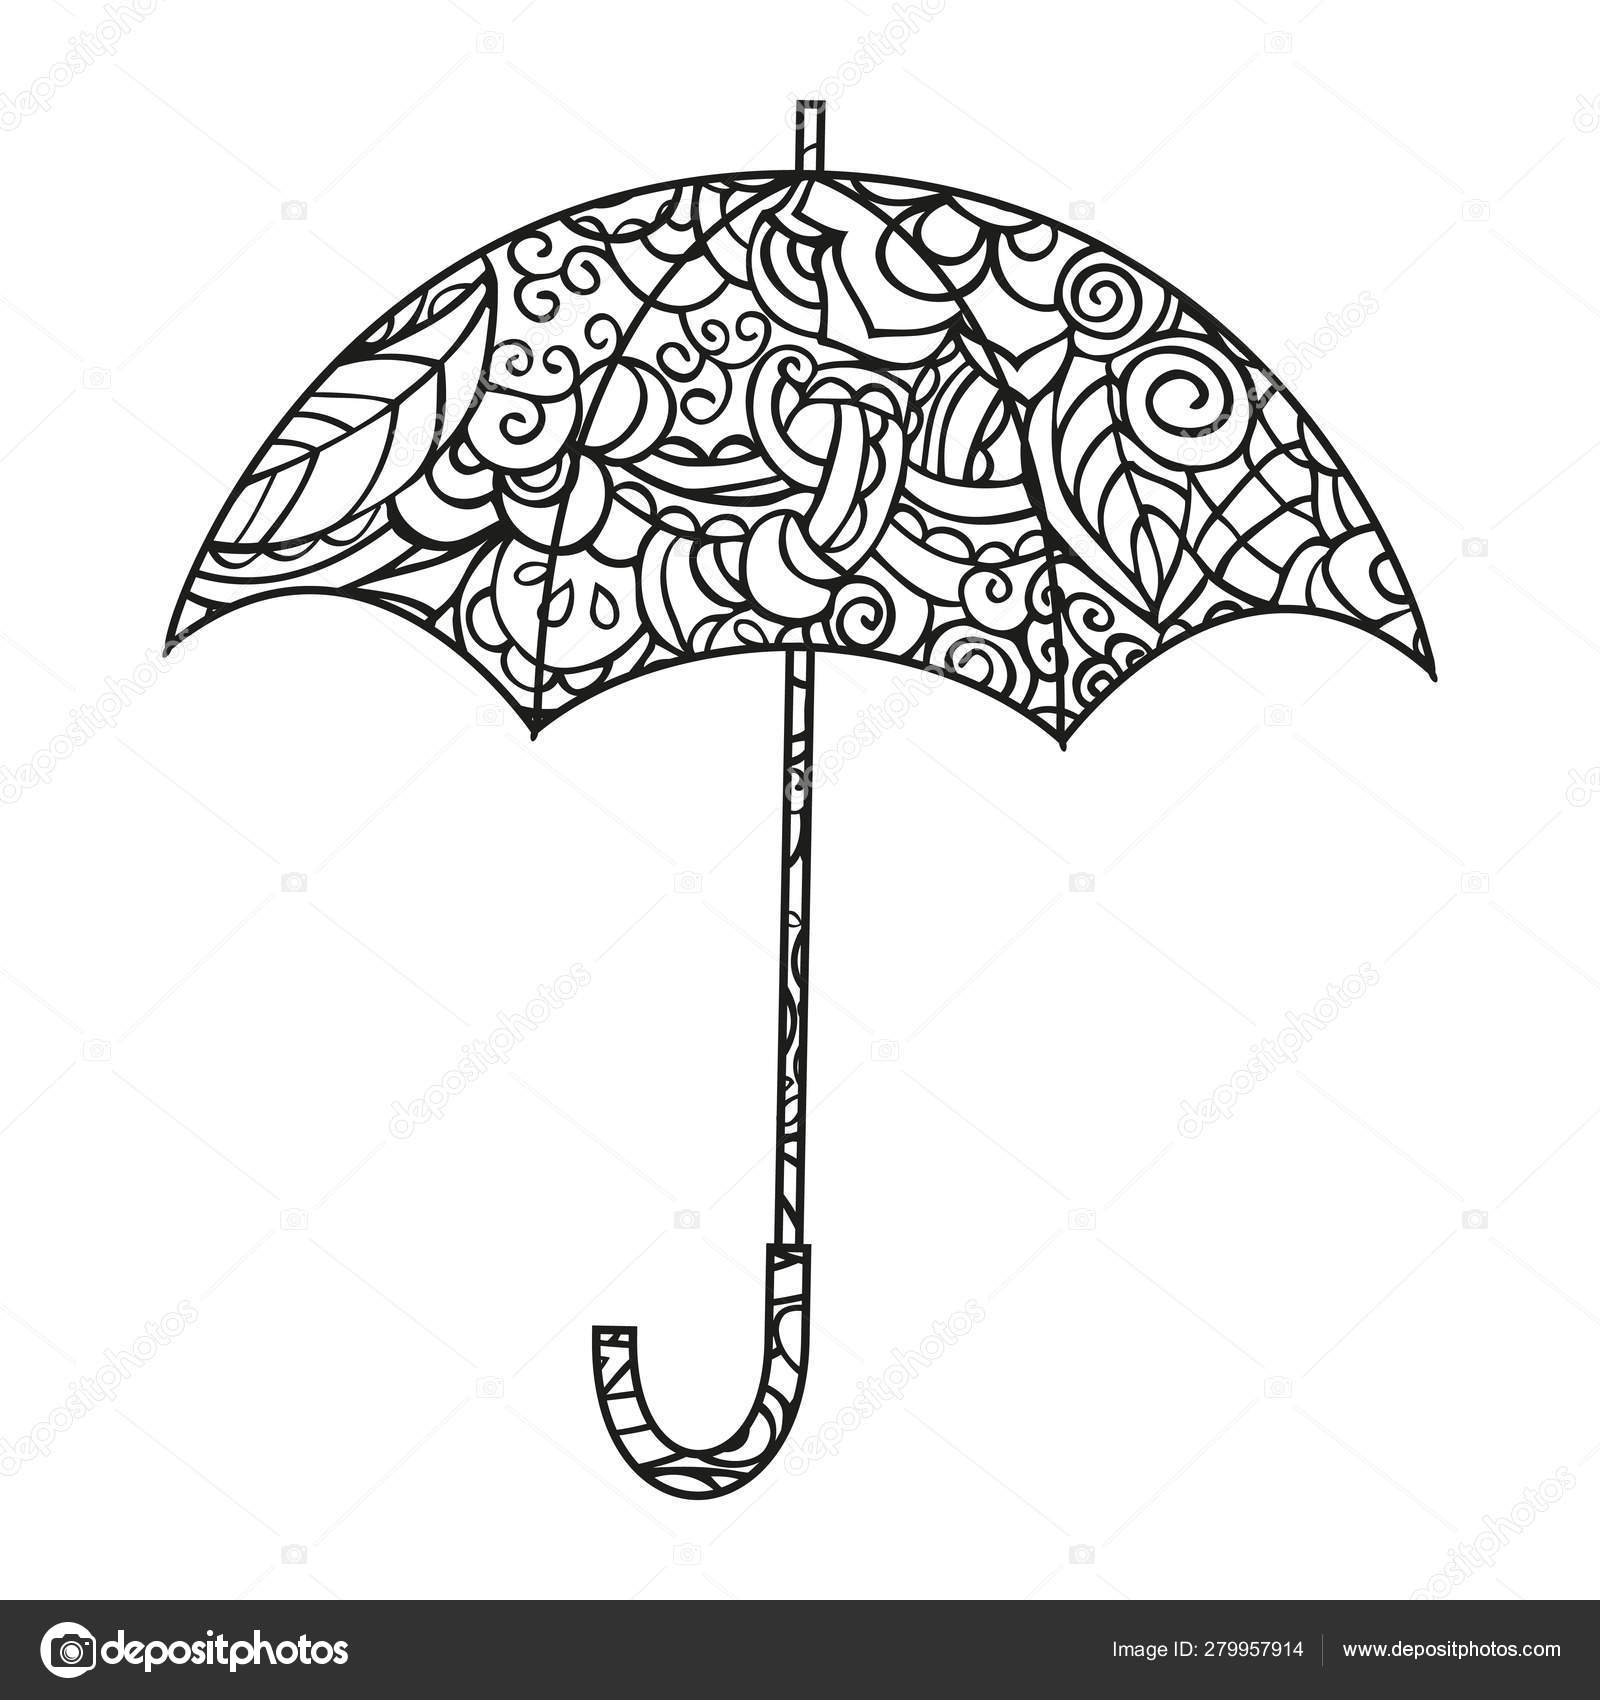 Umbrella Coloring Page Isolated Black White Vector ...